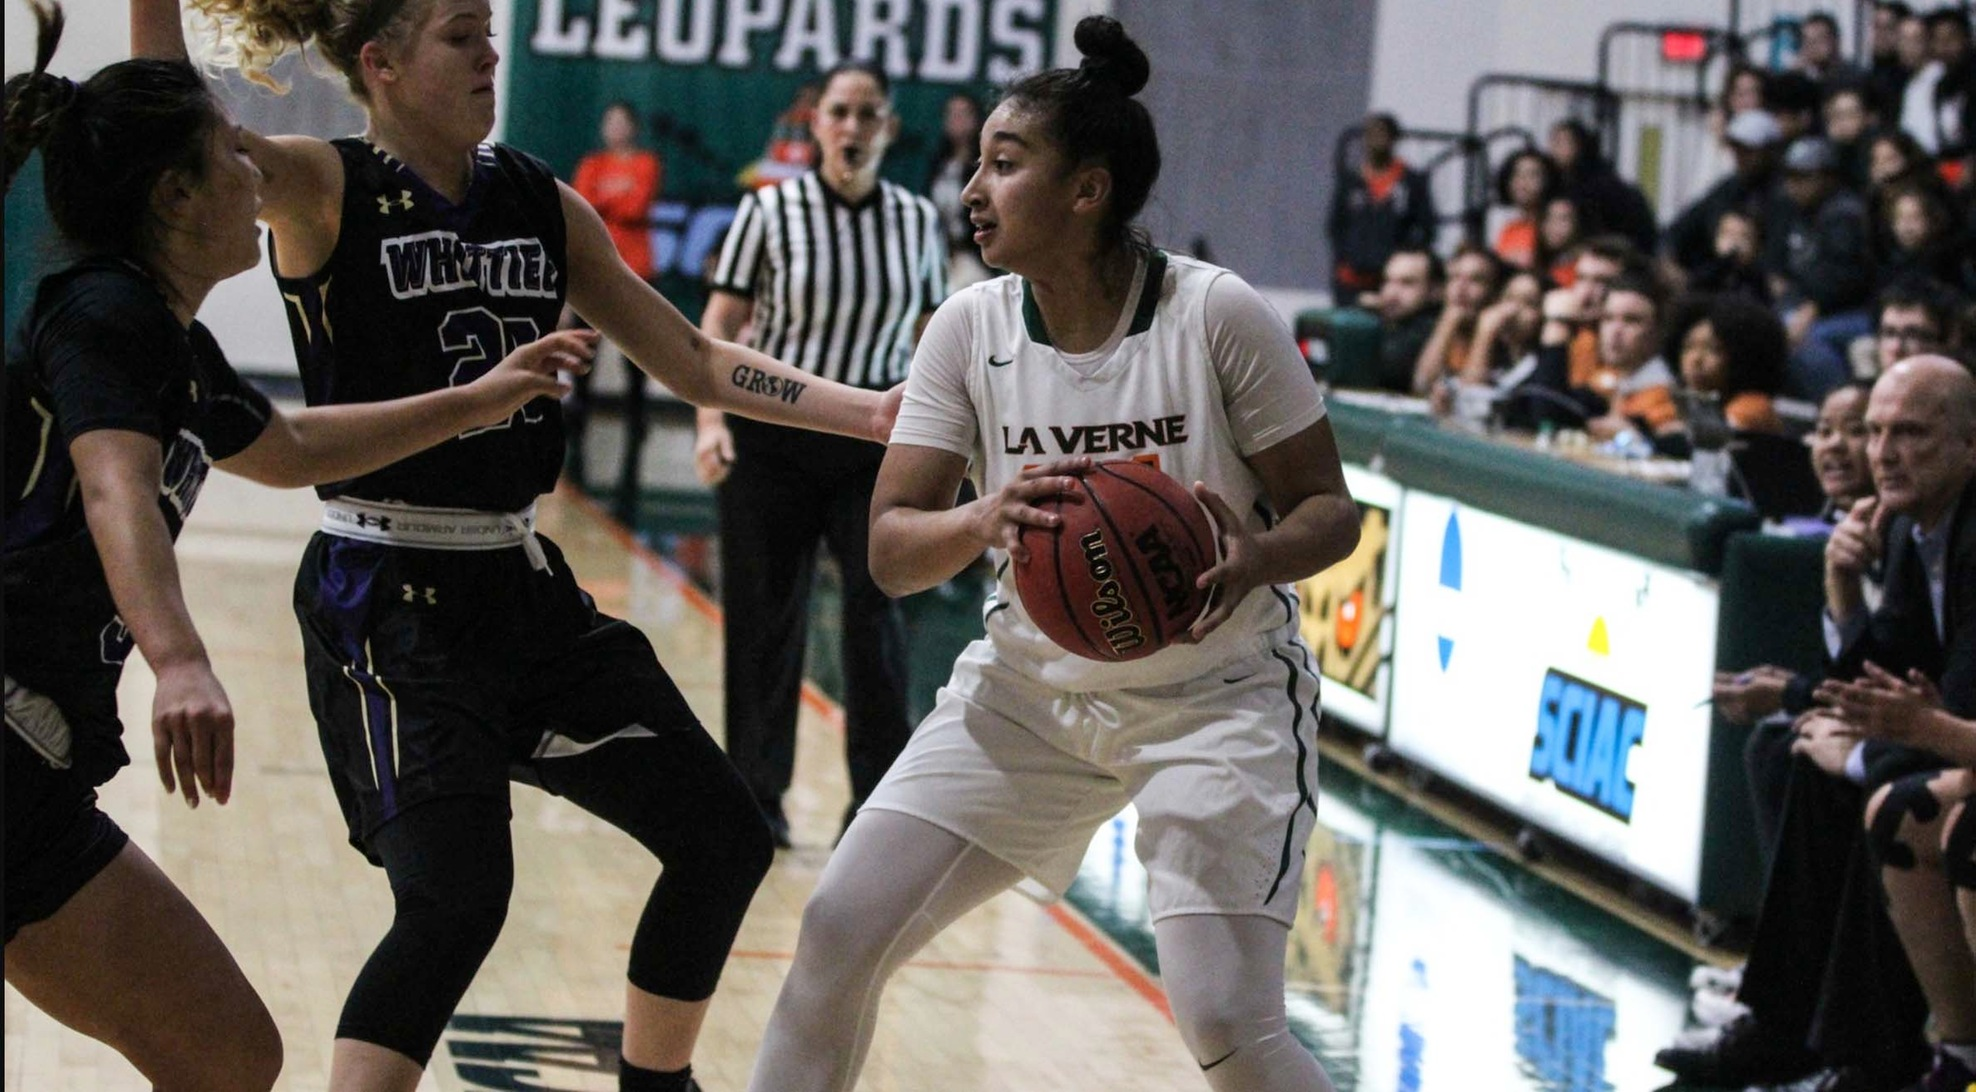 Garcia Silva leads Leopards over Redlands